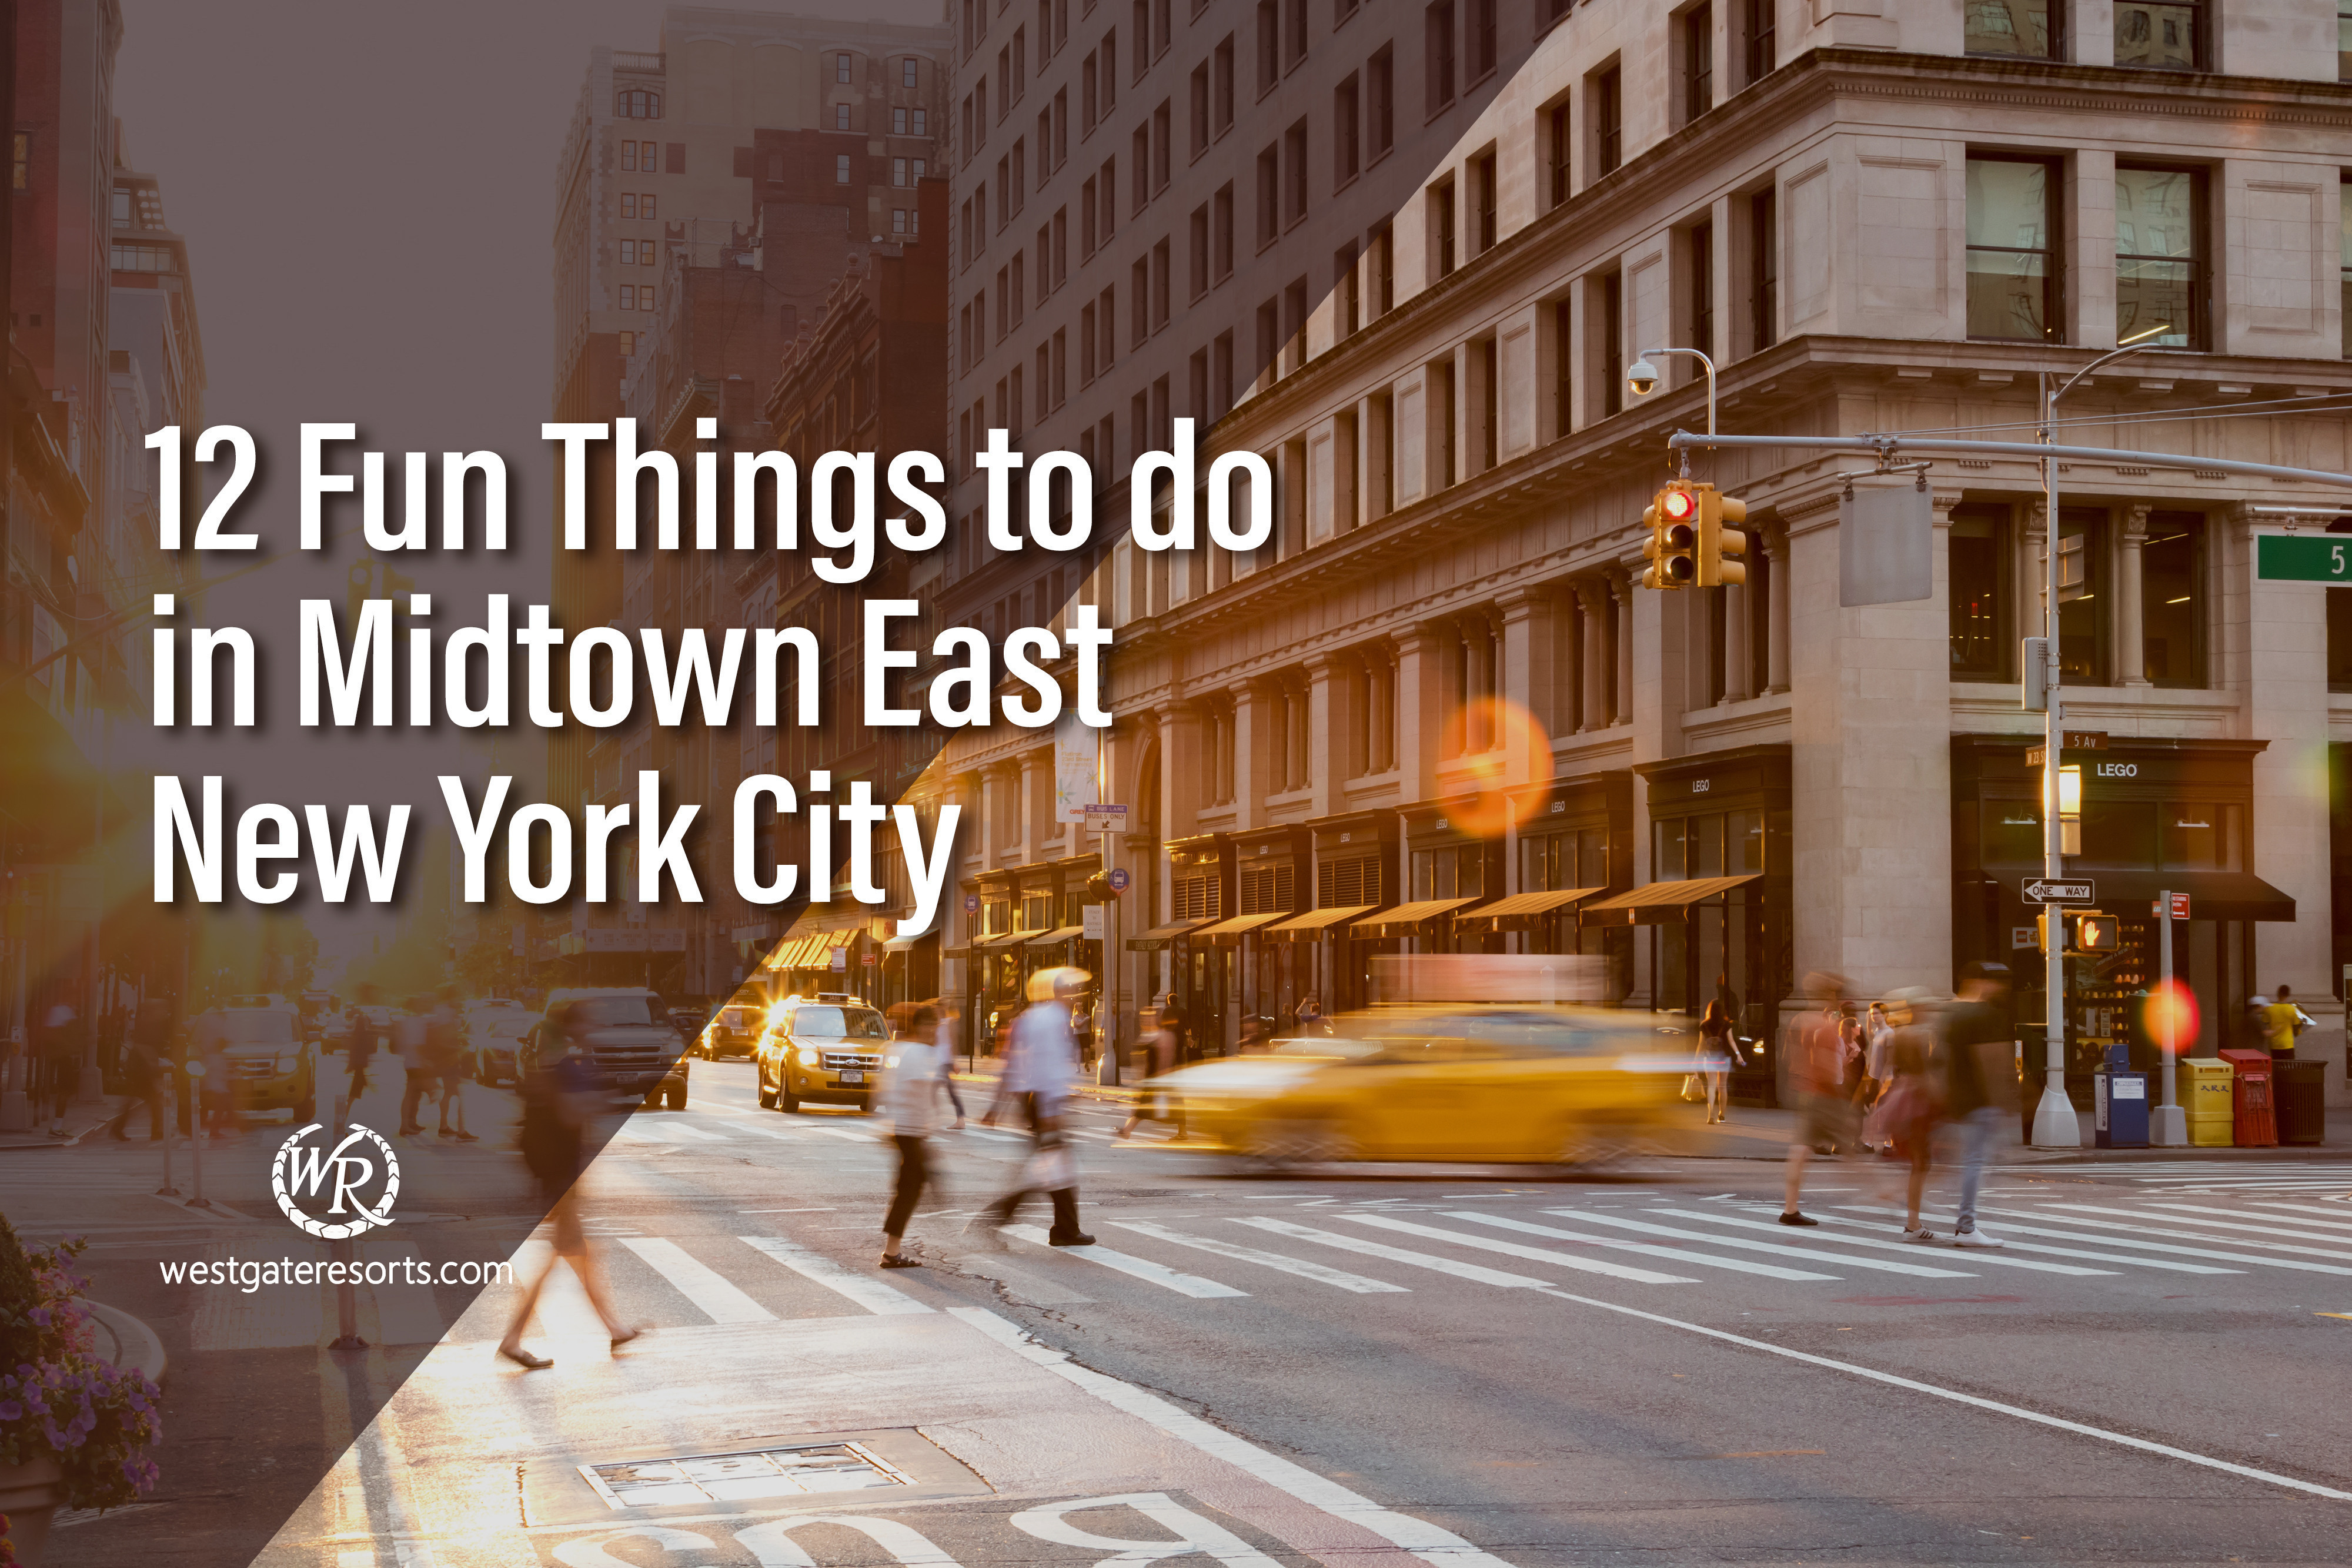 12 Fun Things to do in Midtown East New York City